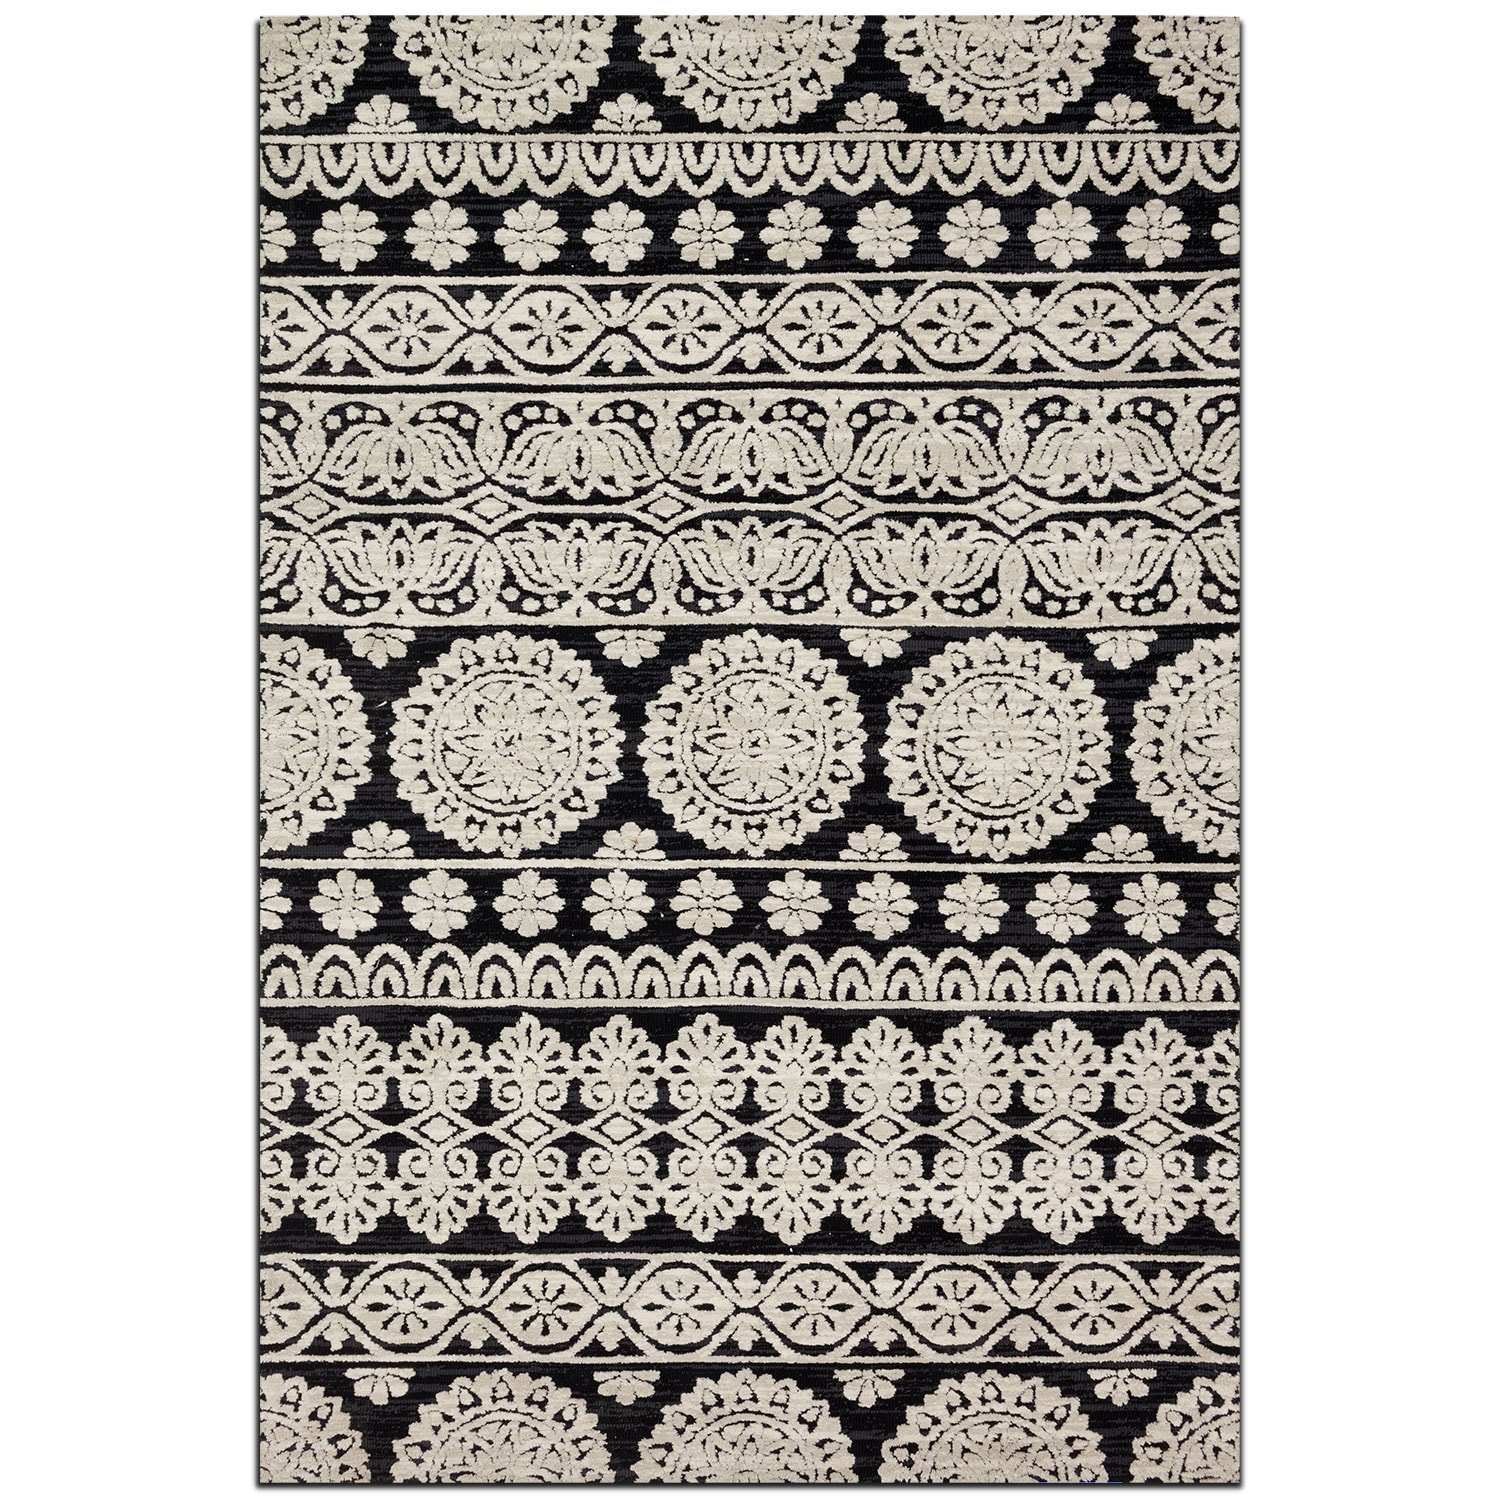 Rugs - Lotus 8' x 10' Rug - Black and Silver